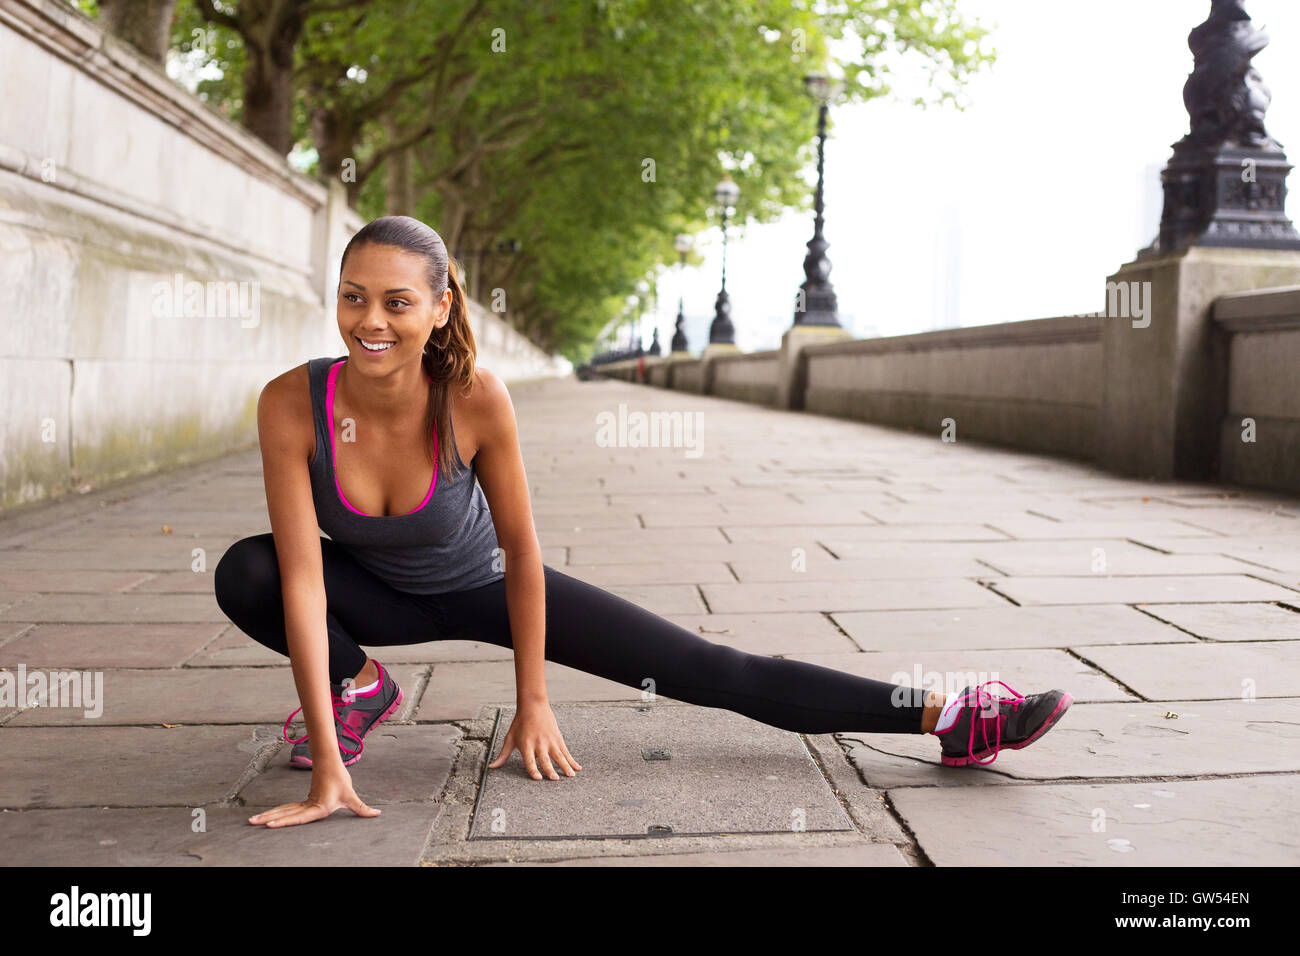 fitness woman stretching her leg muscles before going running - Stock Image